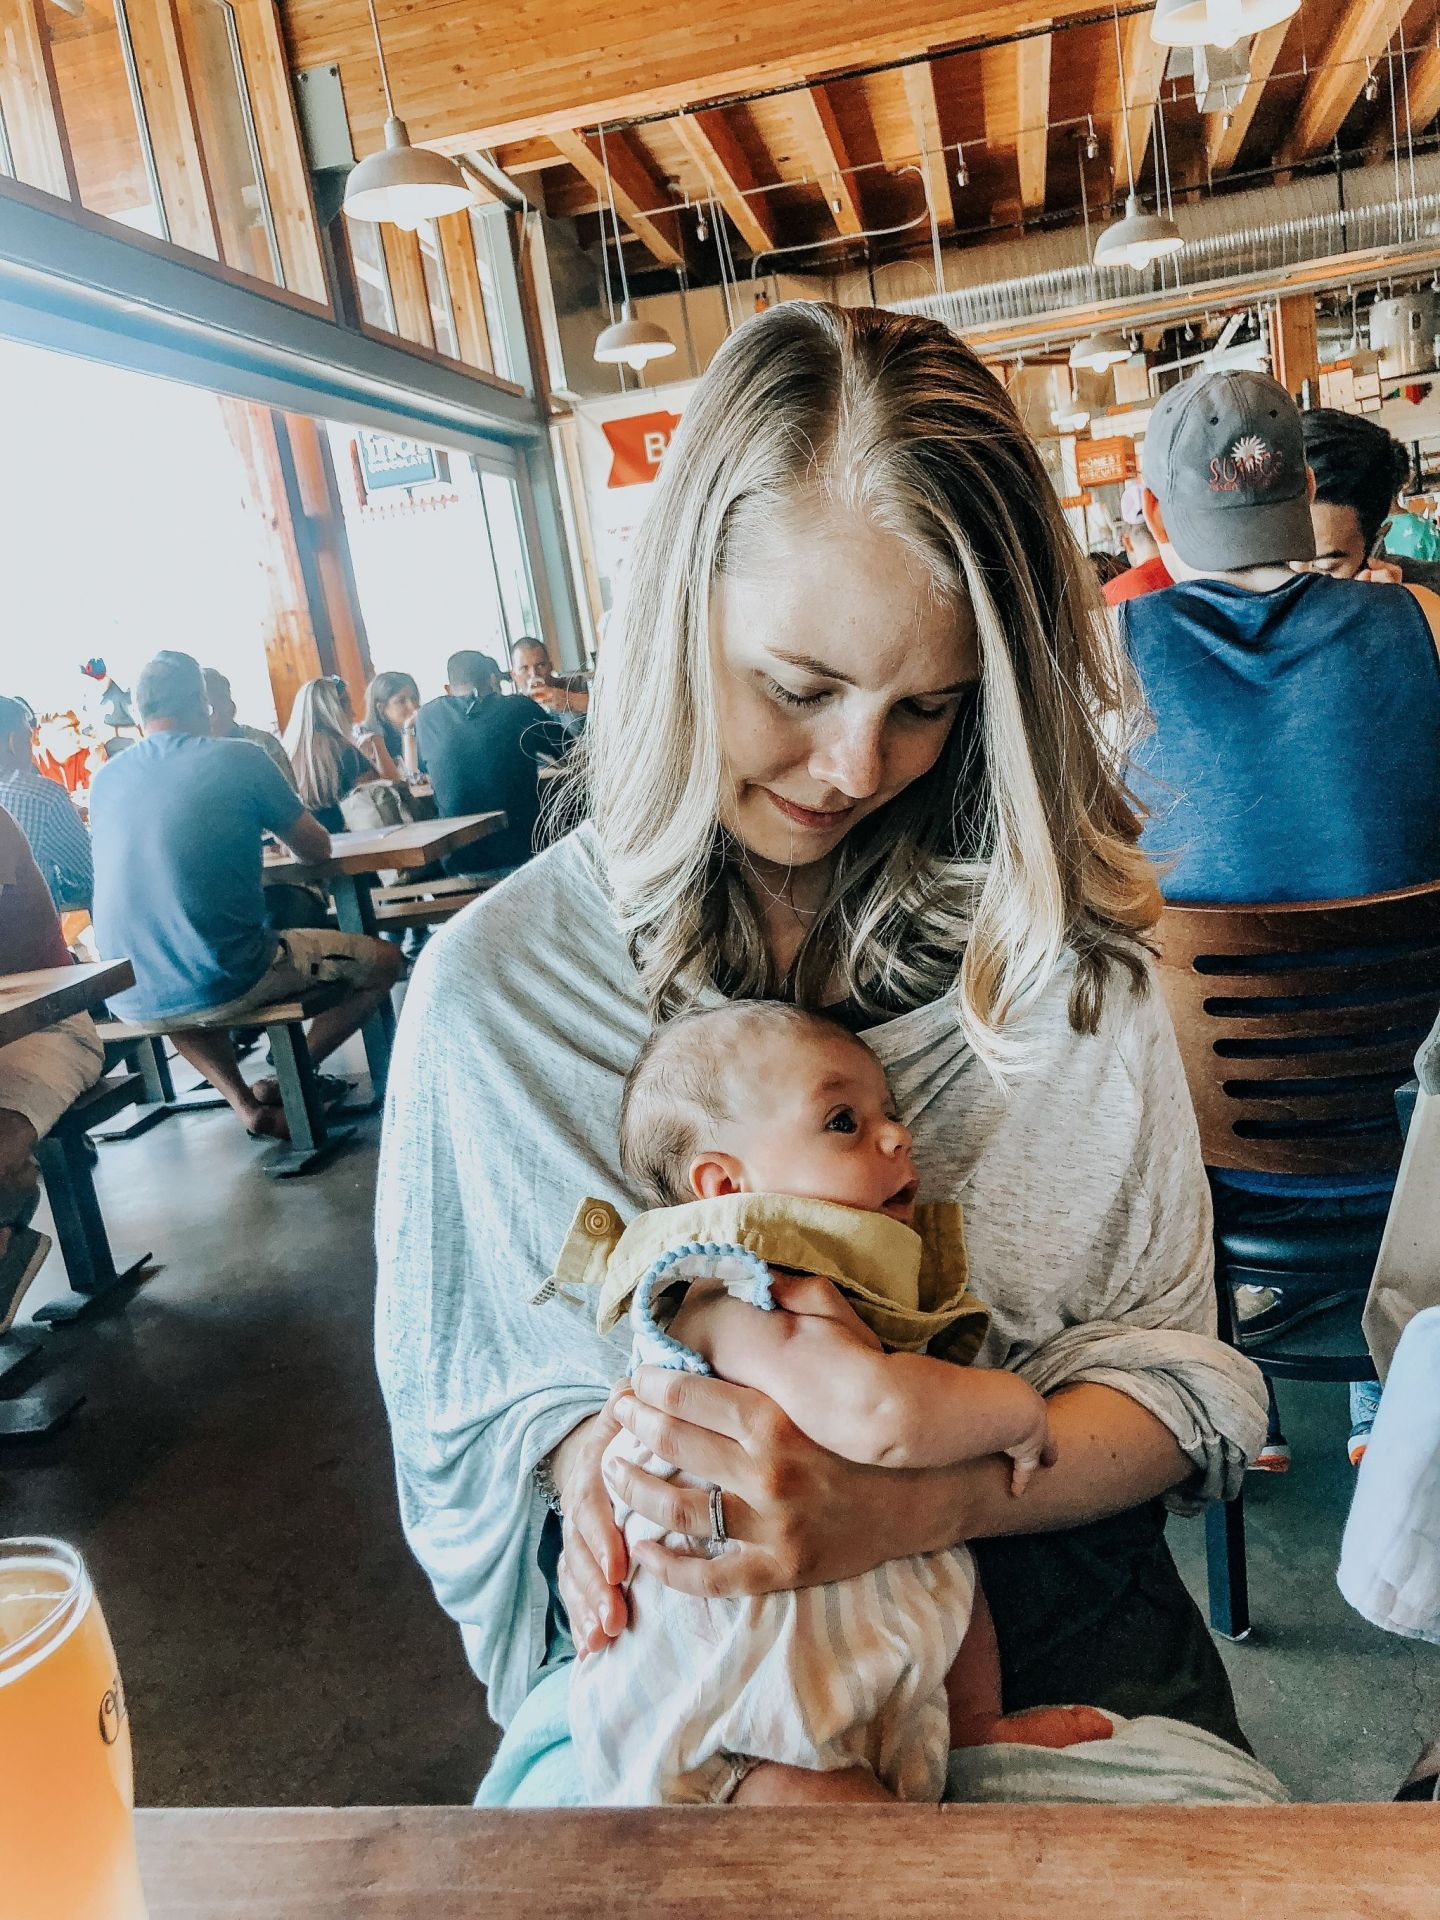 5 ways to love your bestie or friend well when she has a newborn. Five creative ways to show your friend that you care during the newborn stage. How to care for your friends that just had a baby. Newborn Stage tips and tricks. Ways to serve those with a new baby. My Favorite Lactation Cookies. How to be helpful during the #newbornstage. #newbabytips #newbornstagetips #lactationcookiesrecipe #bestfriendsupport #bestiesupport #newbornlove #adviceonfriendship